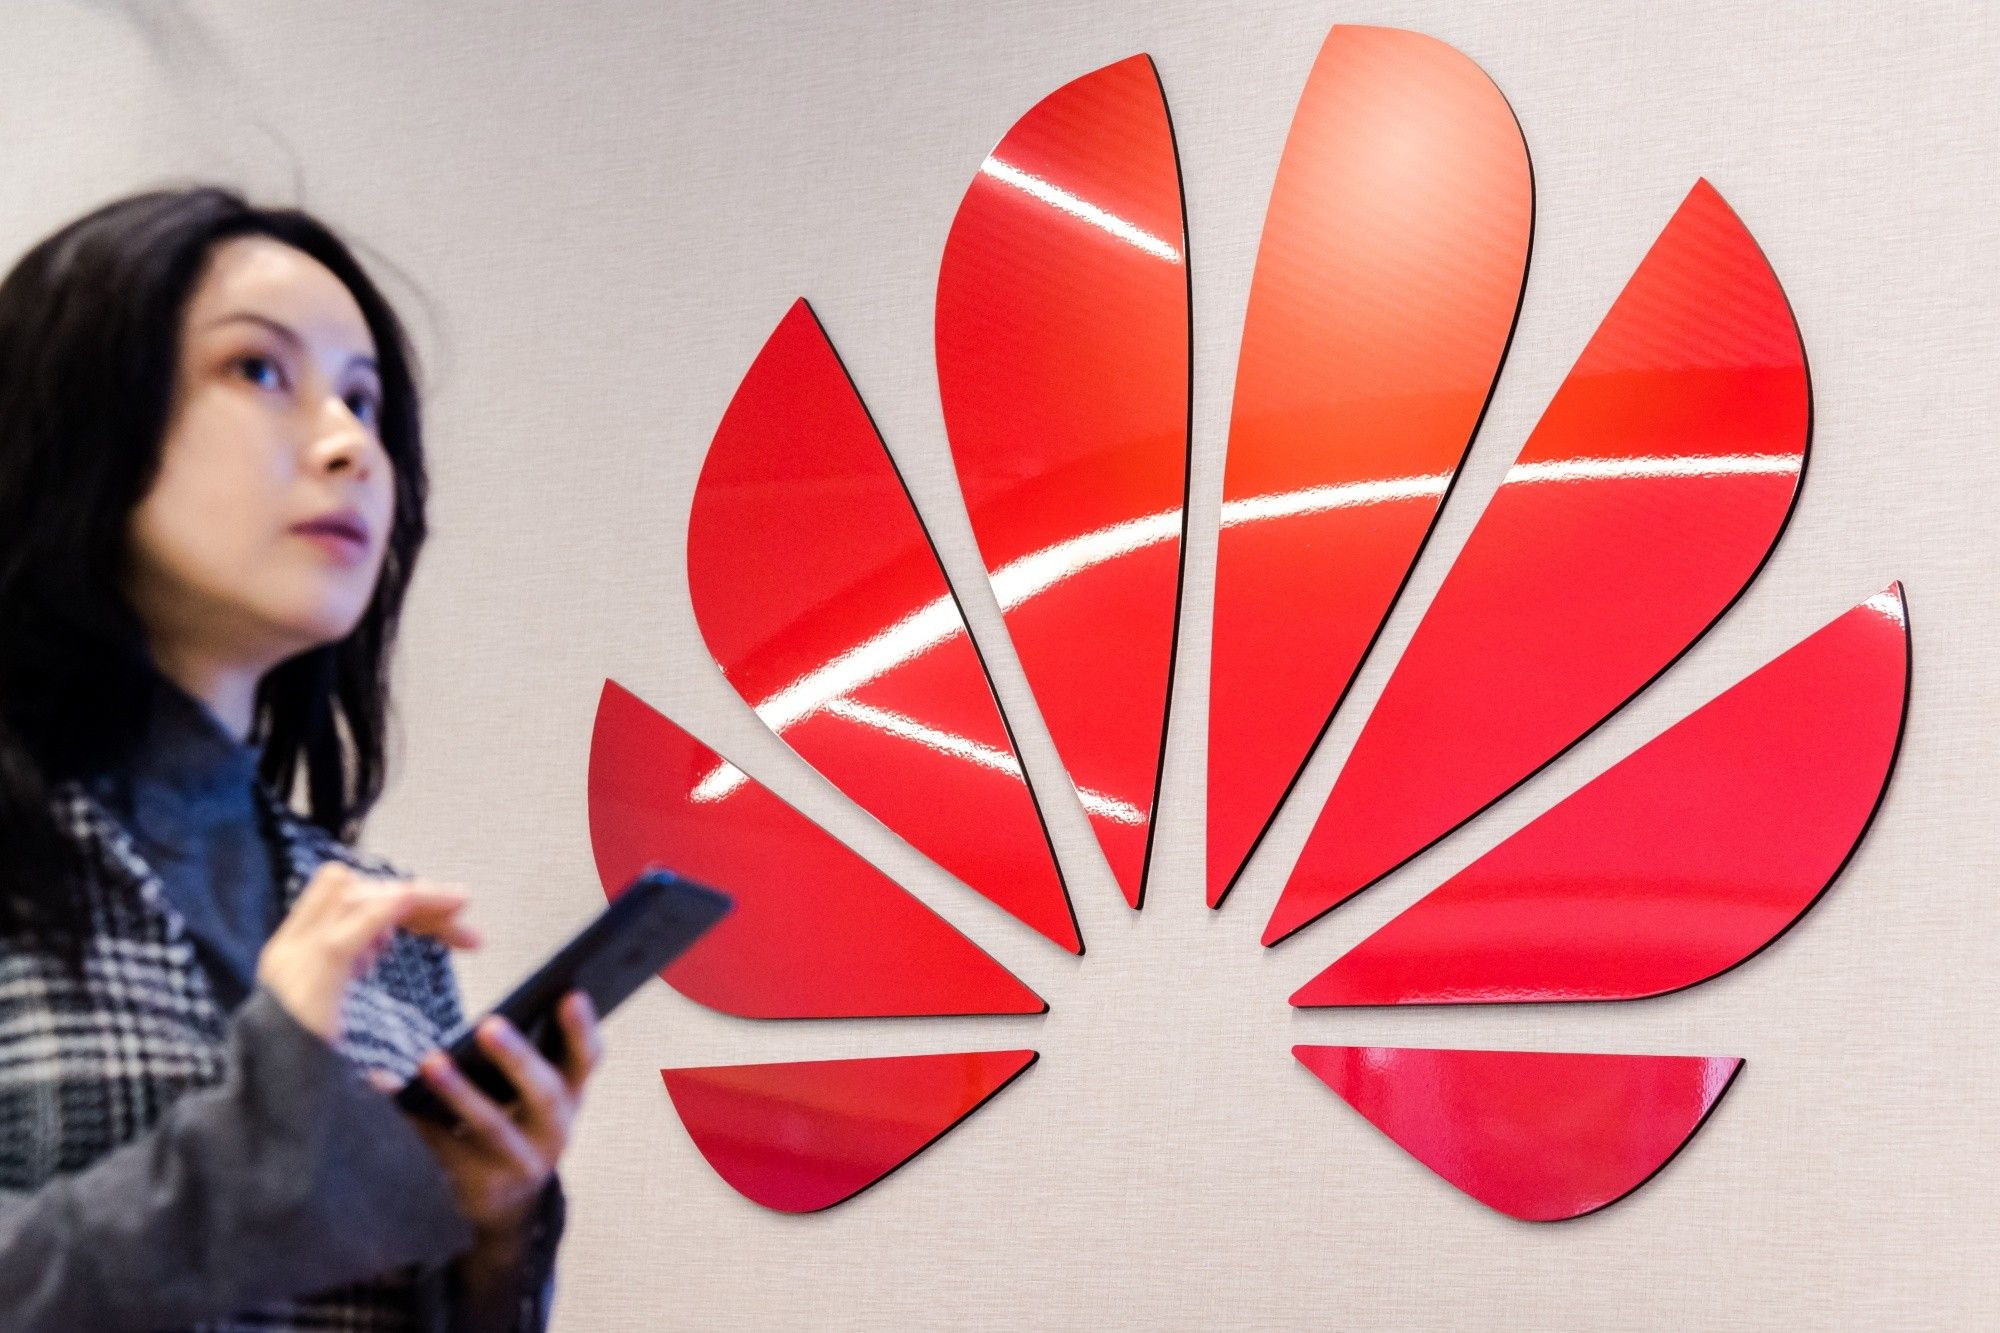 Trump's Huawei Problem: Asia Doesn't Want U.S. to Kneecap China